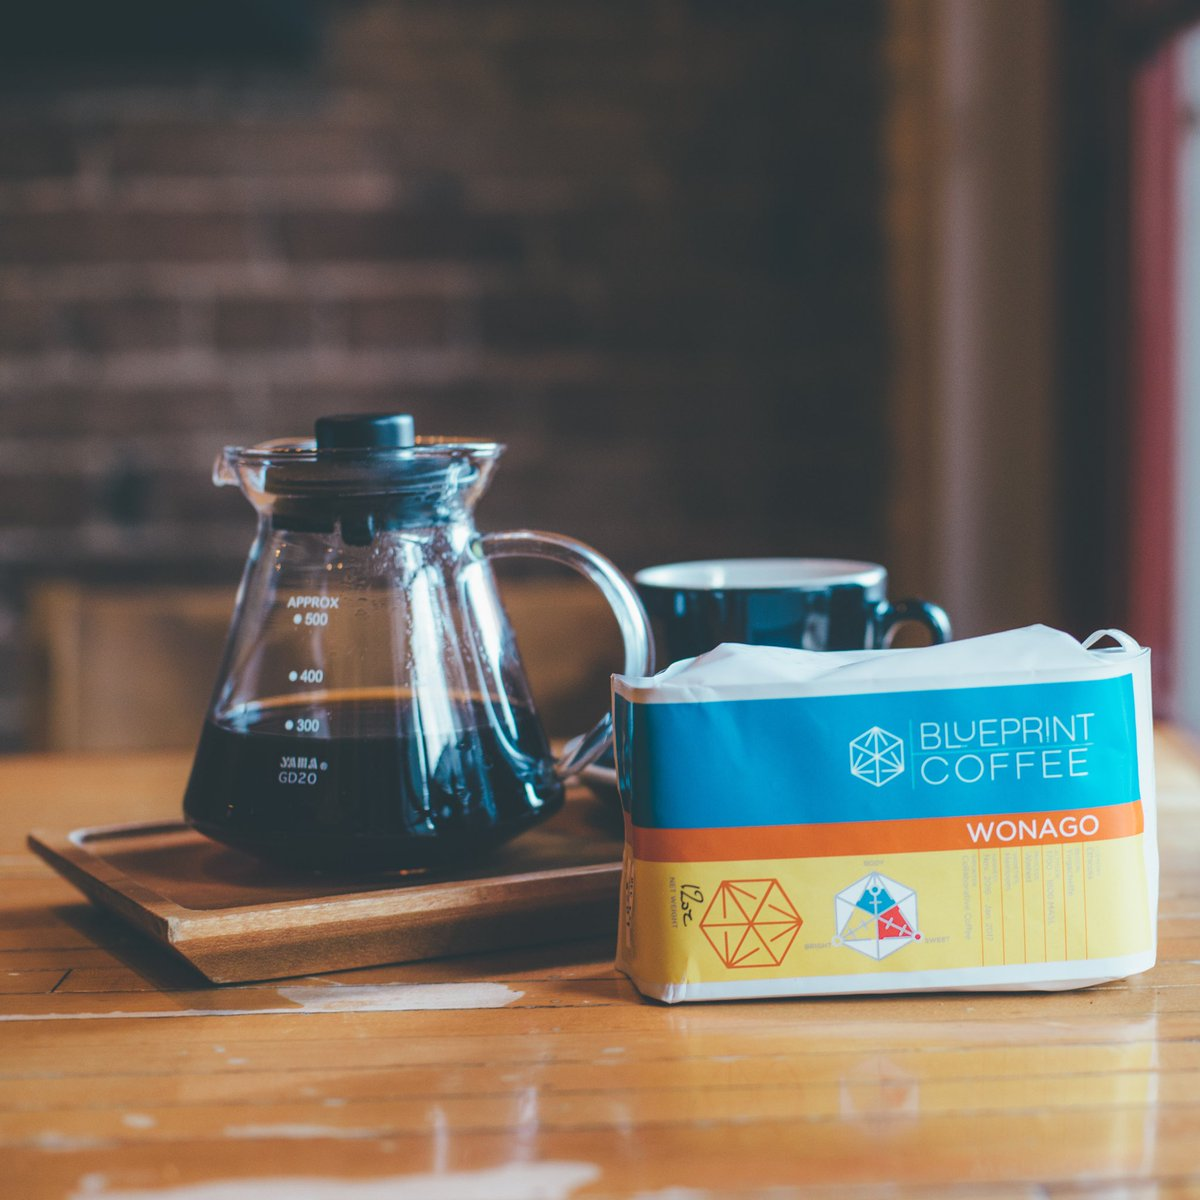 Blueprintcoffee twitter search this coffee boasts notes of lemon orange lime runts candy and candied grapefruit blueprintcoffee v60 themudhouse cherokeelove malvernweather Choice Image